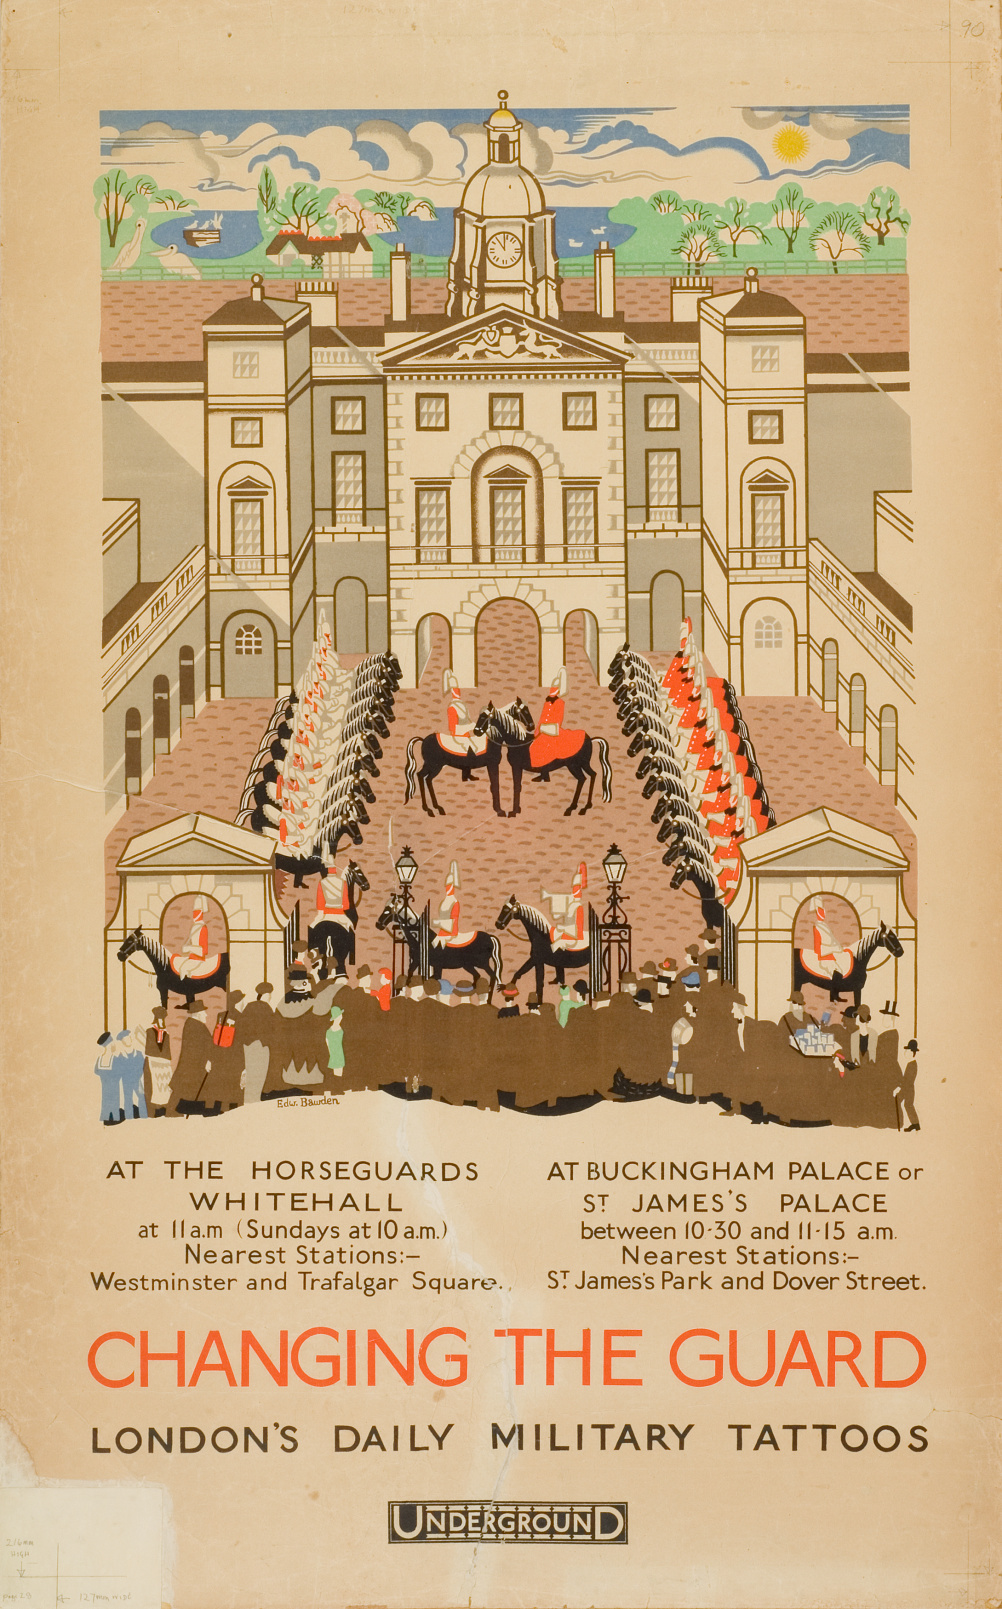 Edward Bawden (1903 – 1989) Changing The Guard: London's Daily Military Tattoos, 1925, lithograph © The Edward Bawden Estate